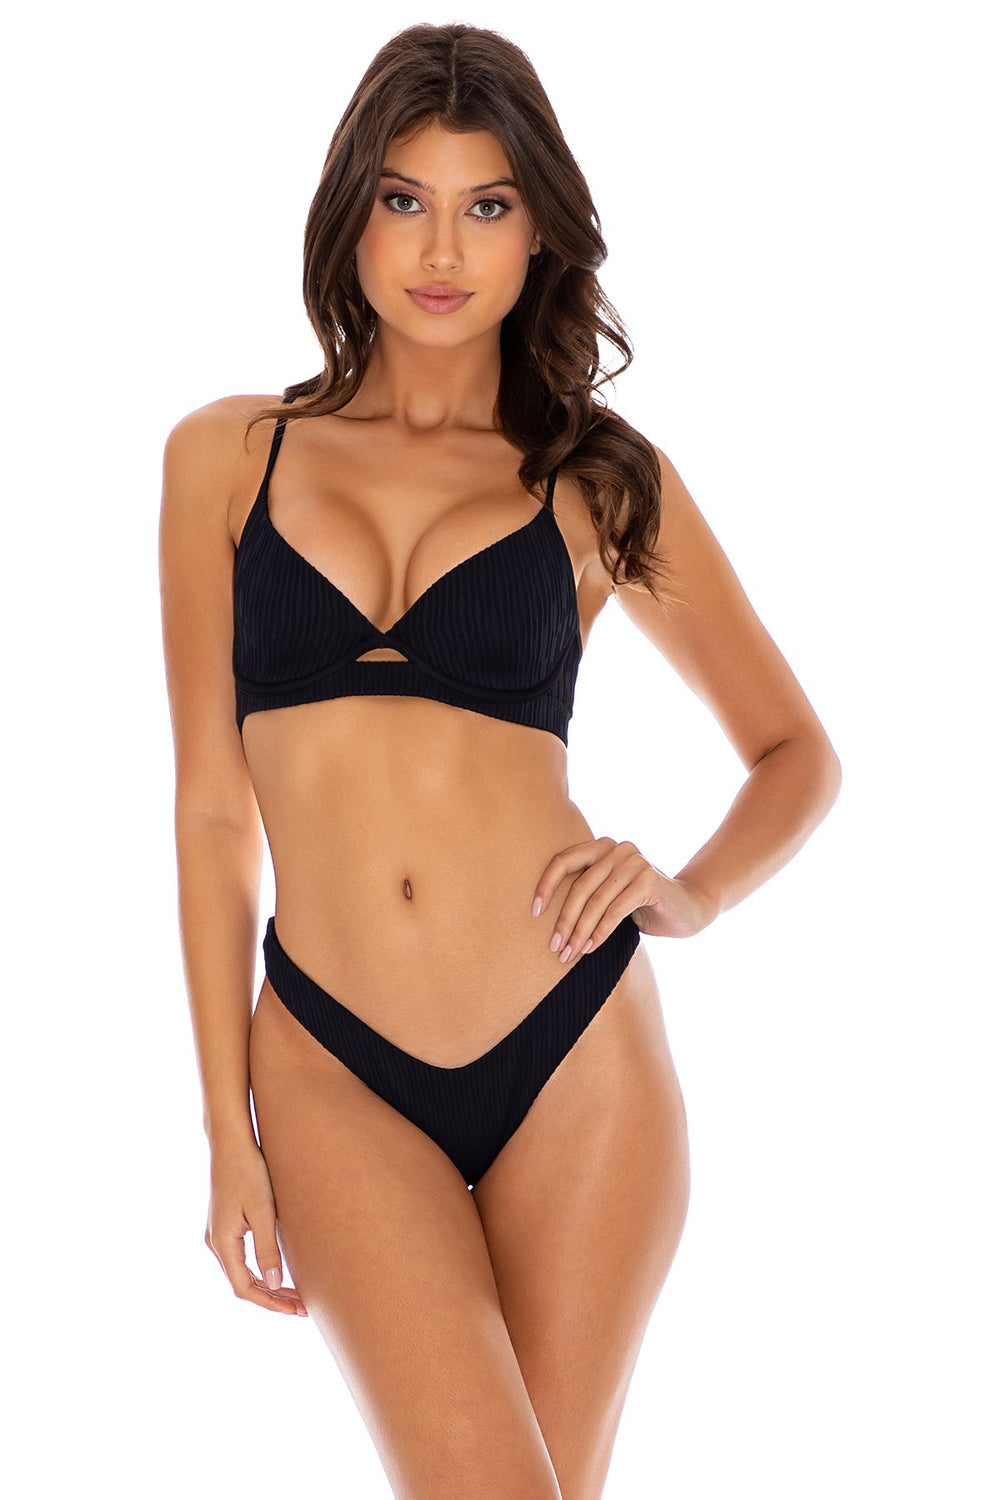 RIVER DANCE - Underwire Top & High Leg Bottom • Black